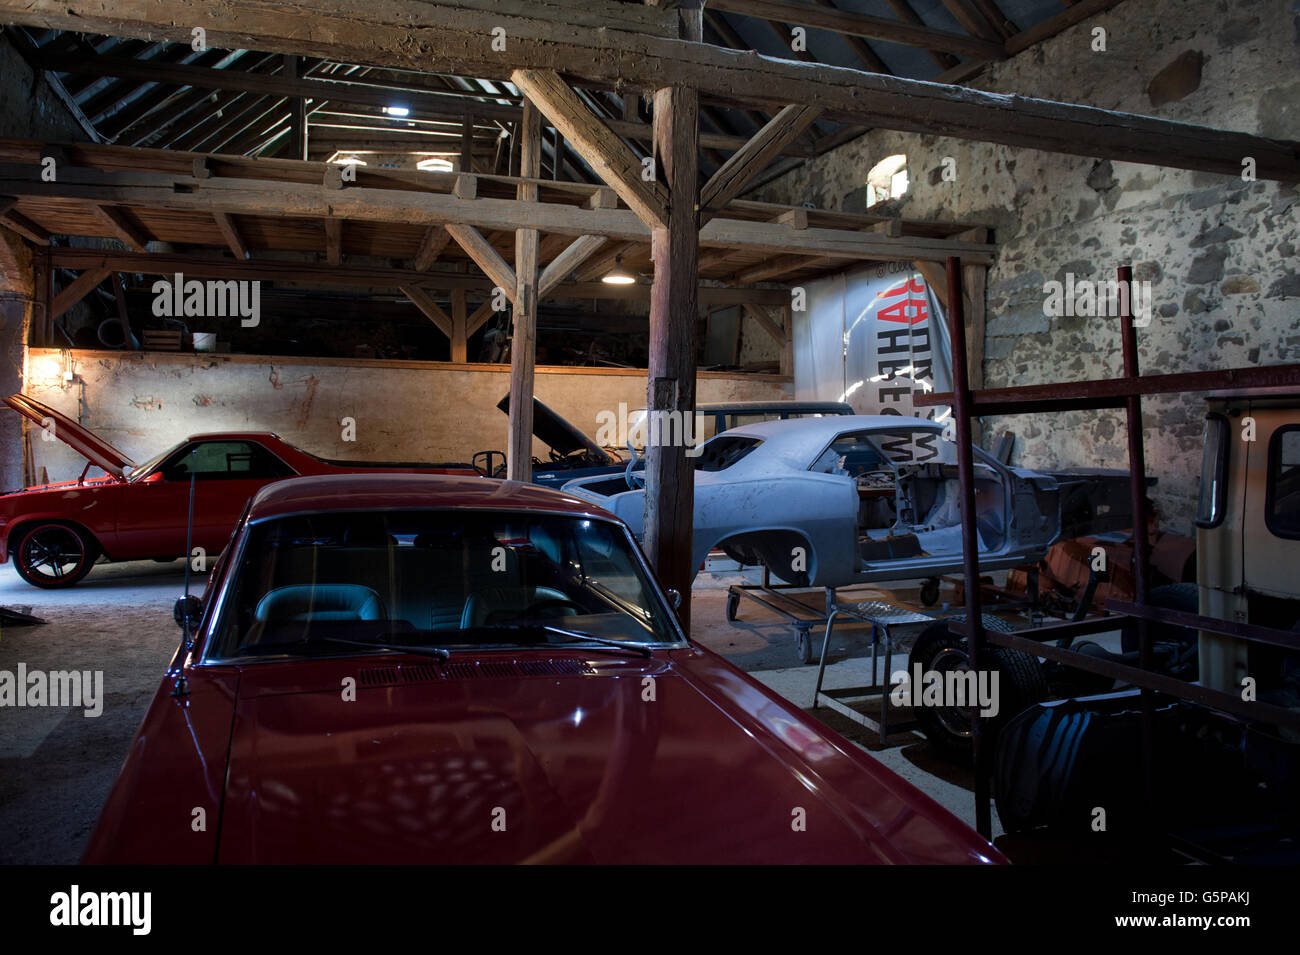 Modern storage area - Classic Cars And Modern Era Classic Cars Can Be Seen In A Storage Area At